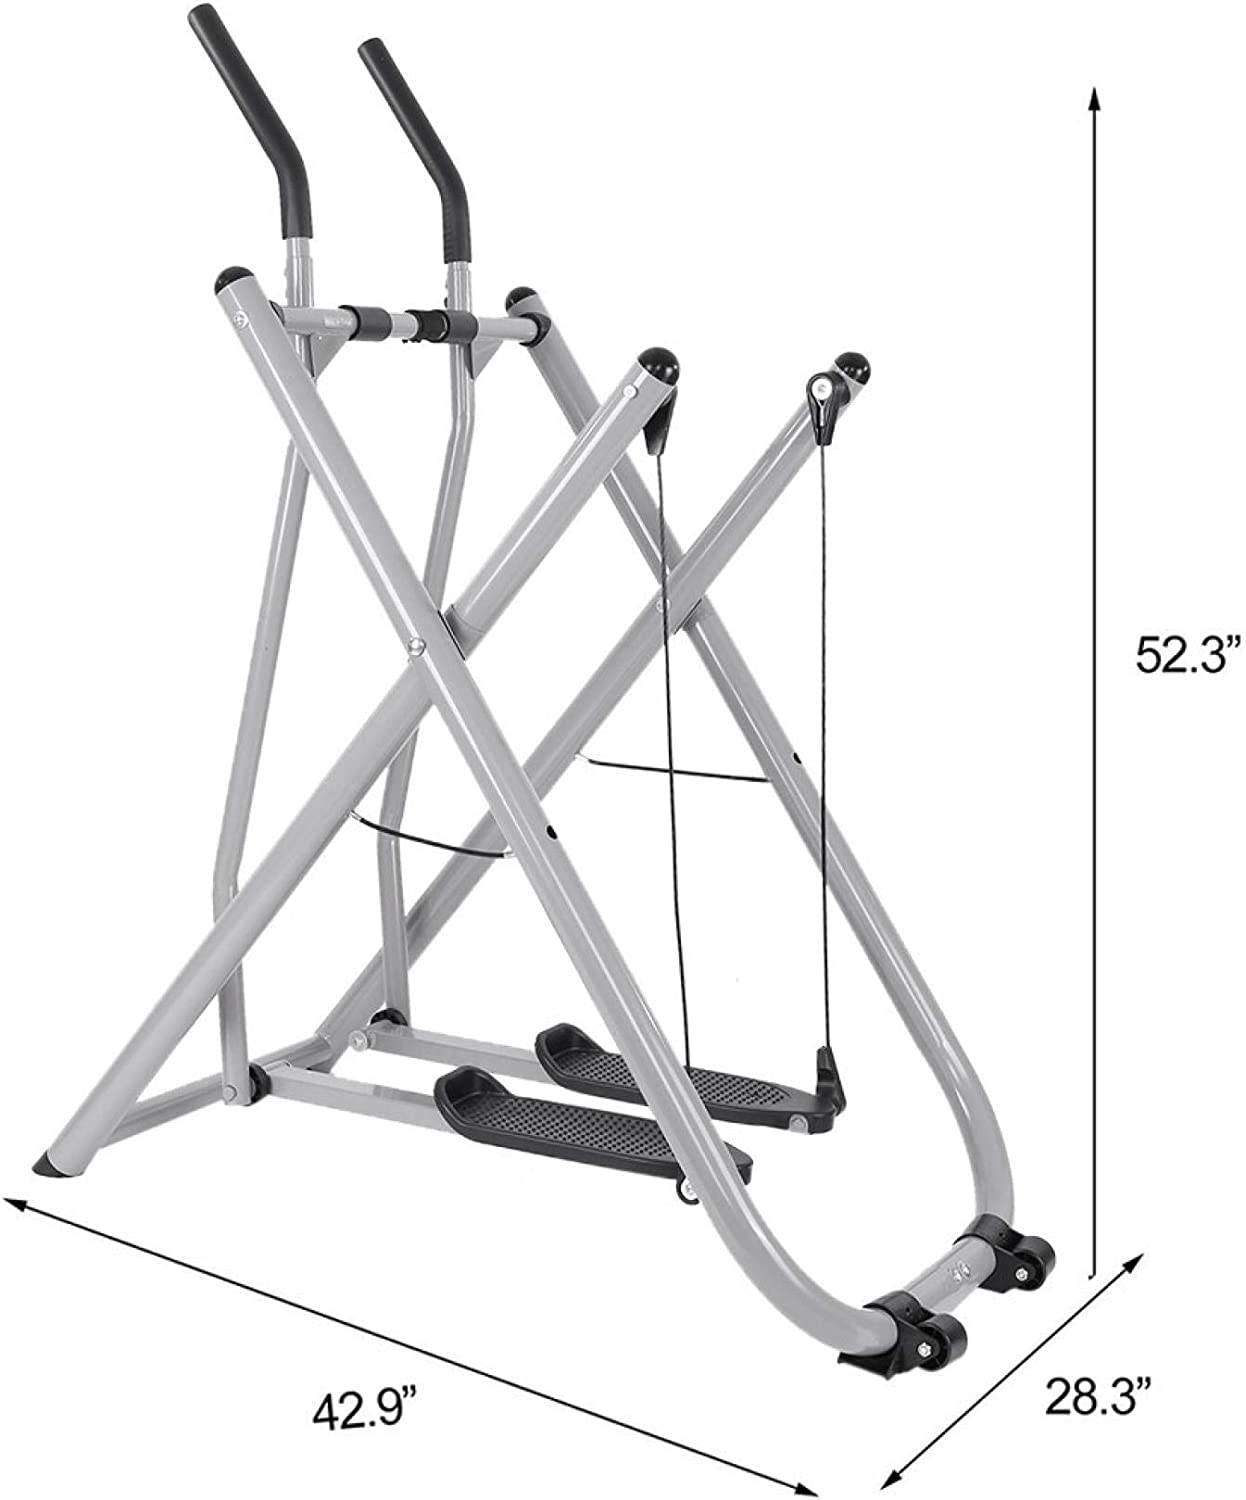 Zunjikelon Foldable Air Walk Trainer Space Walker Glider Elliptical Exercise Machine Fitness Equipment Home Gym Exercise Bike Workout Air Walkers New,Cardio Dual Trainer Upright for Men//Women